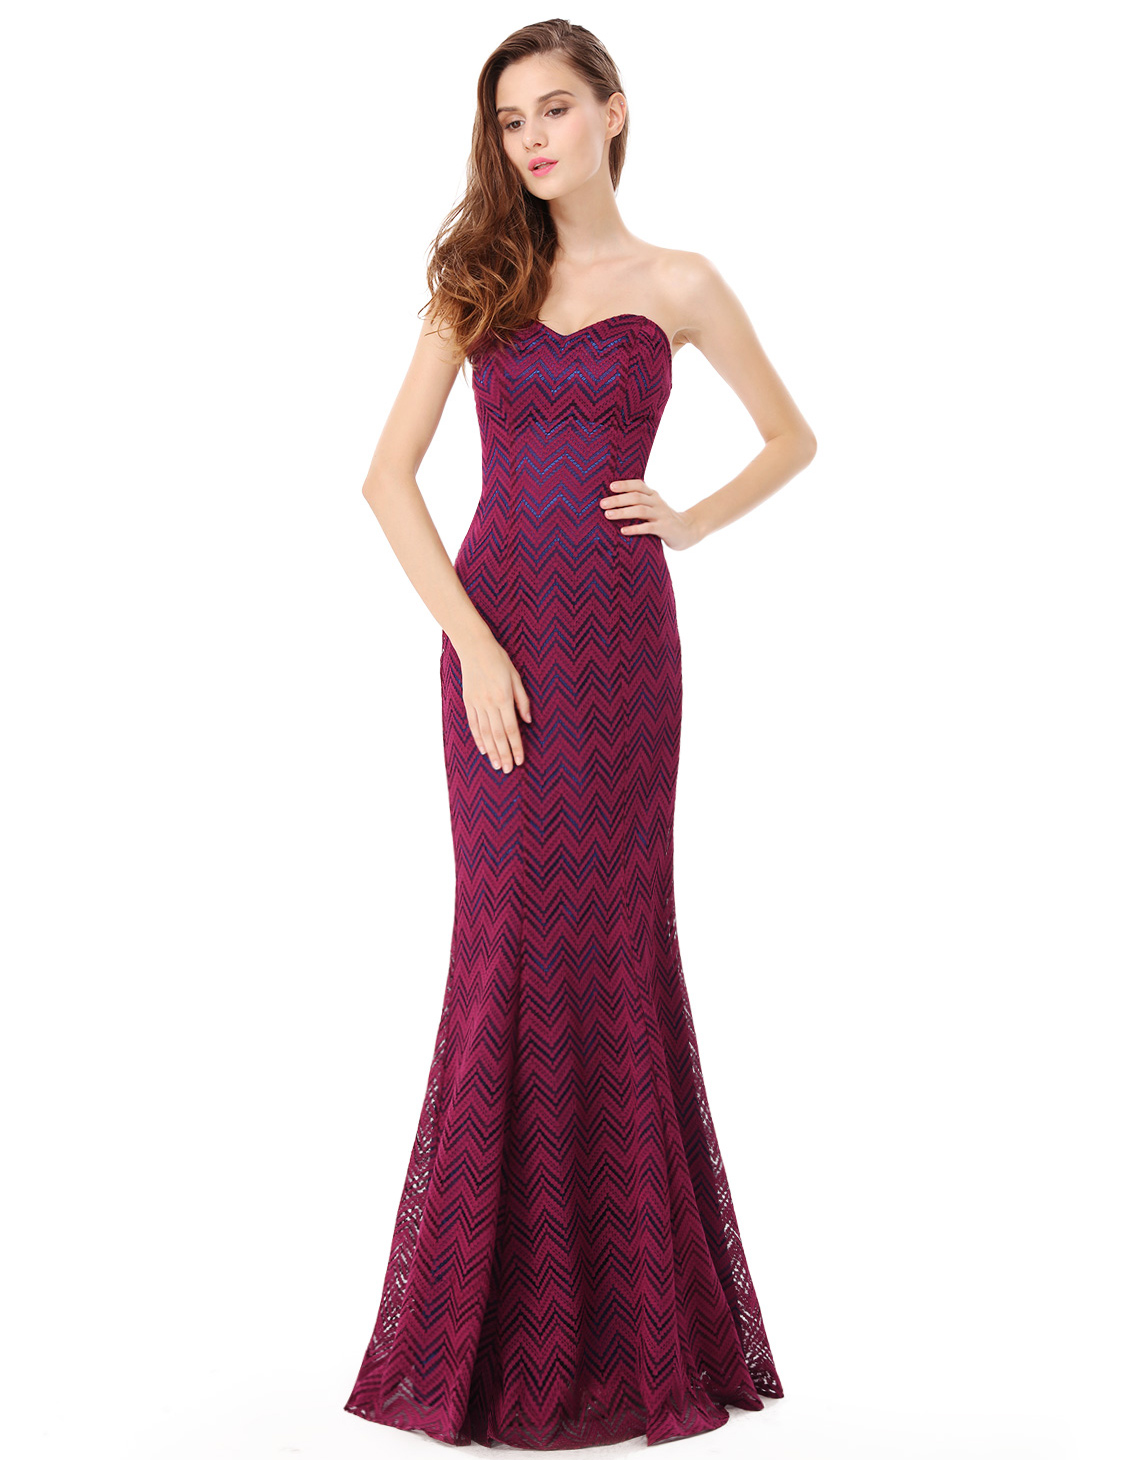 Long-Strapless-Mermaid-Women-Evening-Party-Dresses-Formal-Ball-Prom-Gown-08937